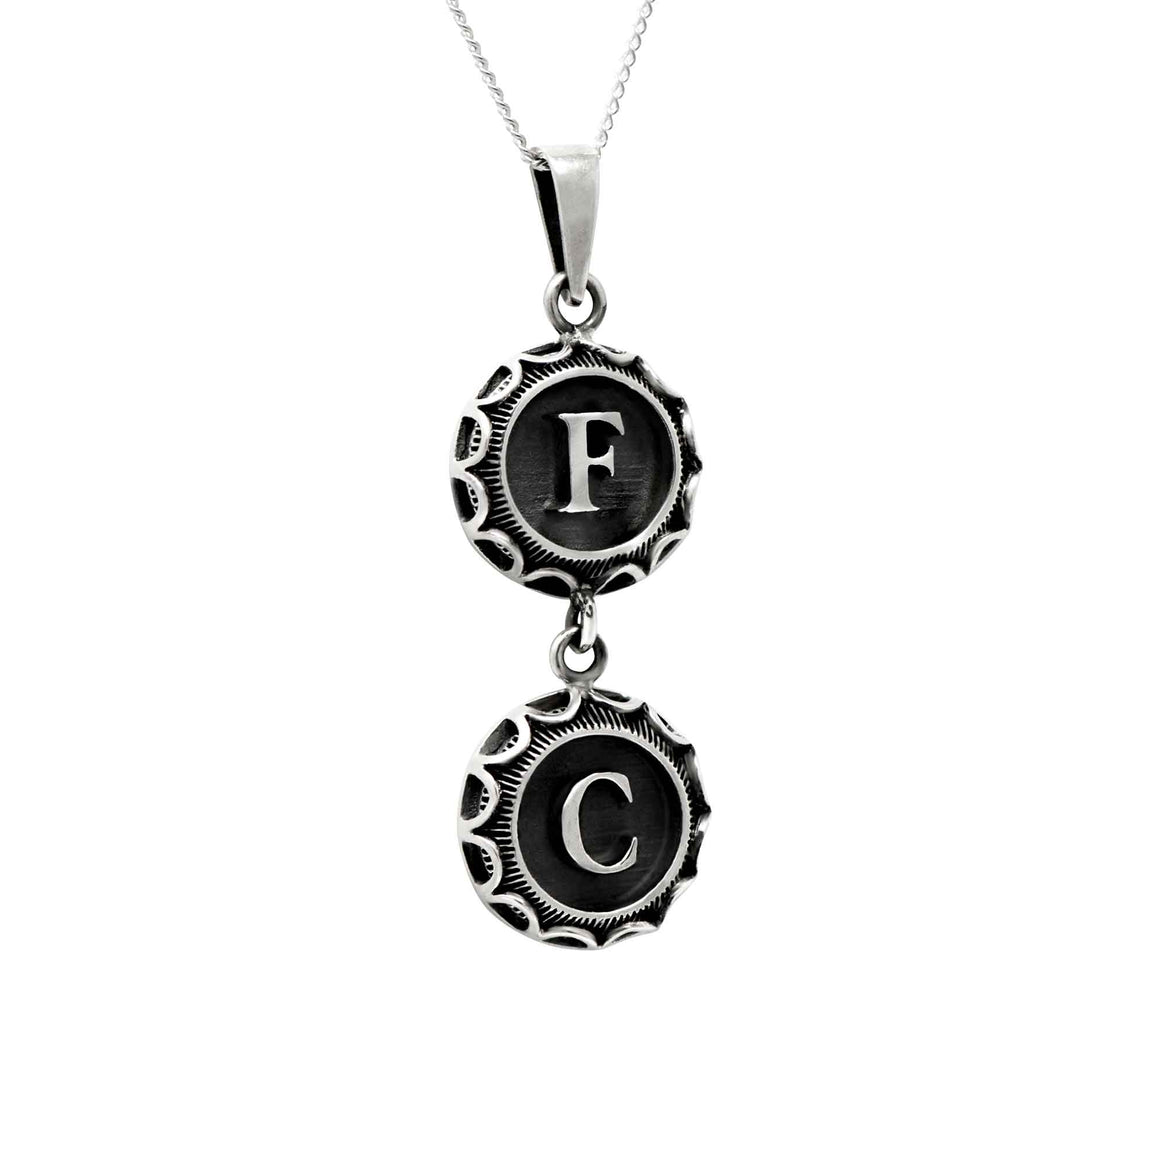 Typewriter Style Double Letter Pendant